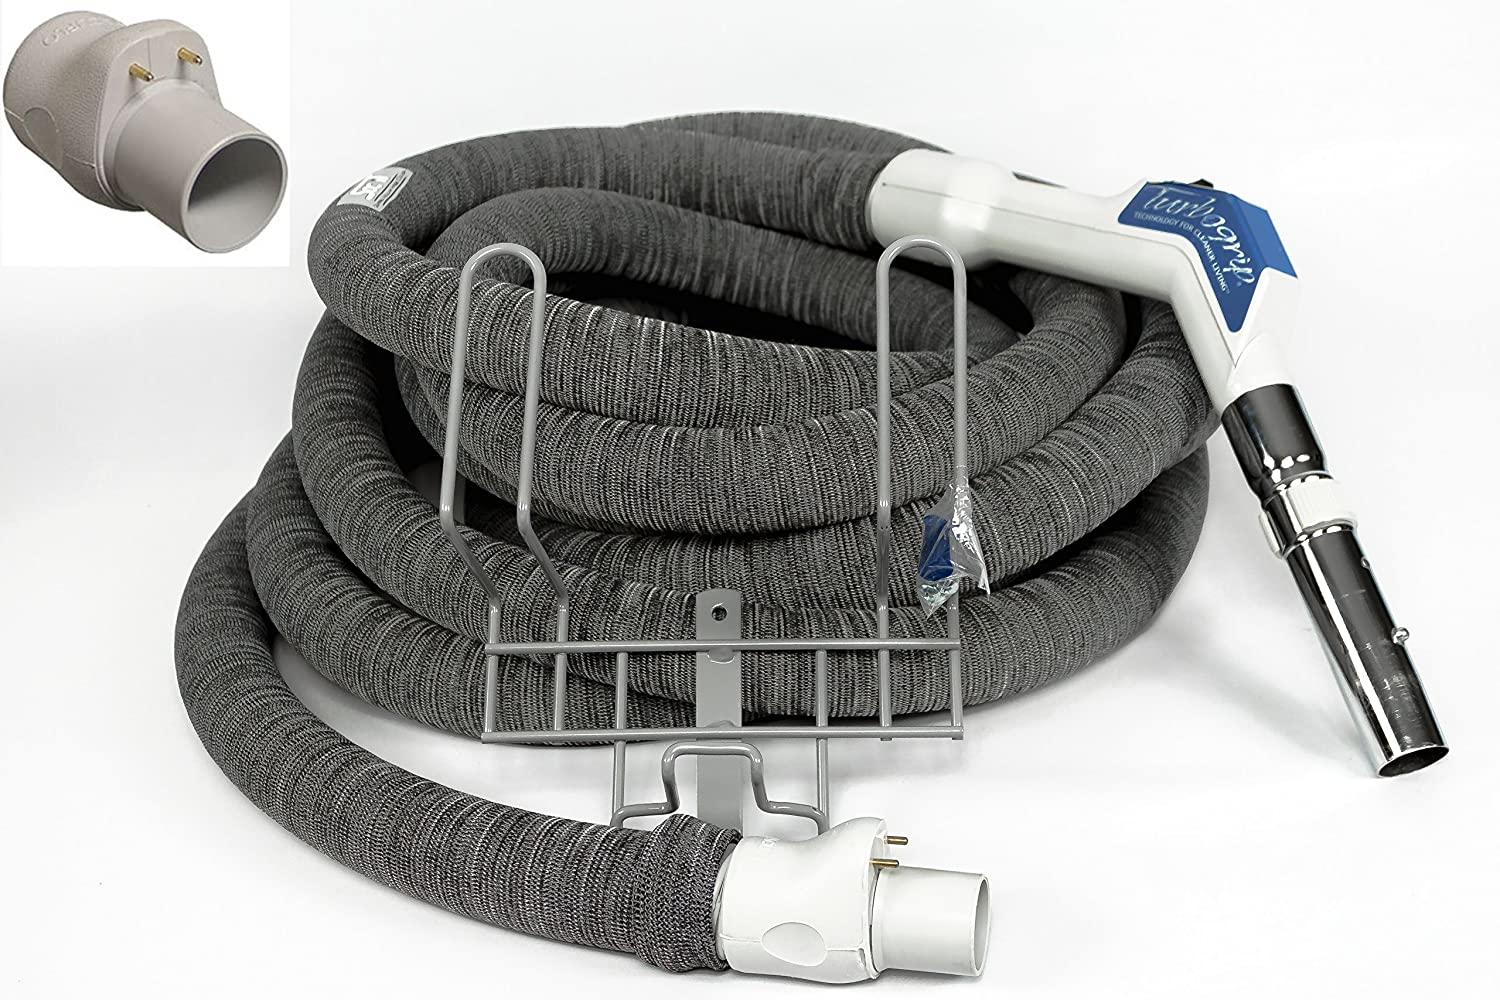 Genuine Vacuflo 7352-40 On/Off Hose with Prongs 40ft With Sock